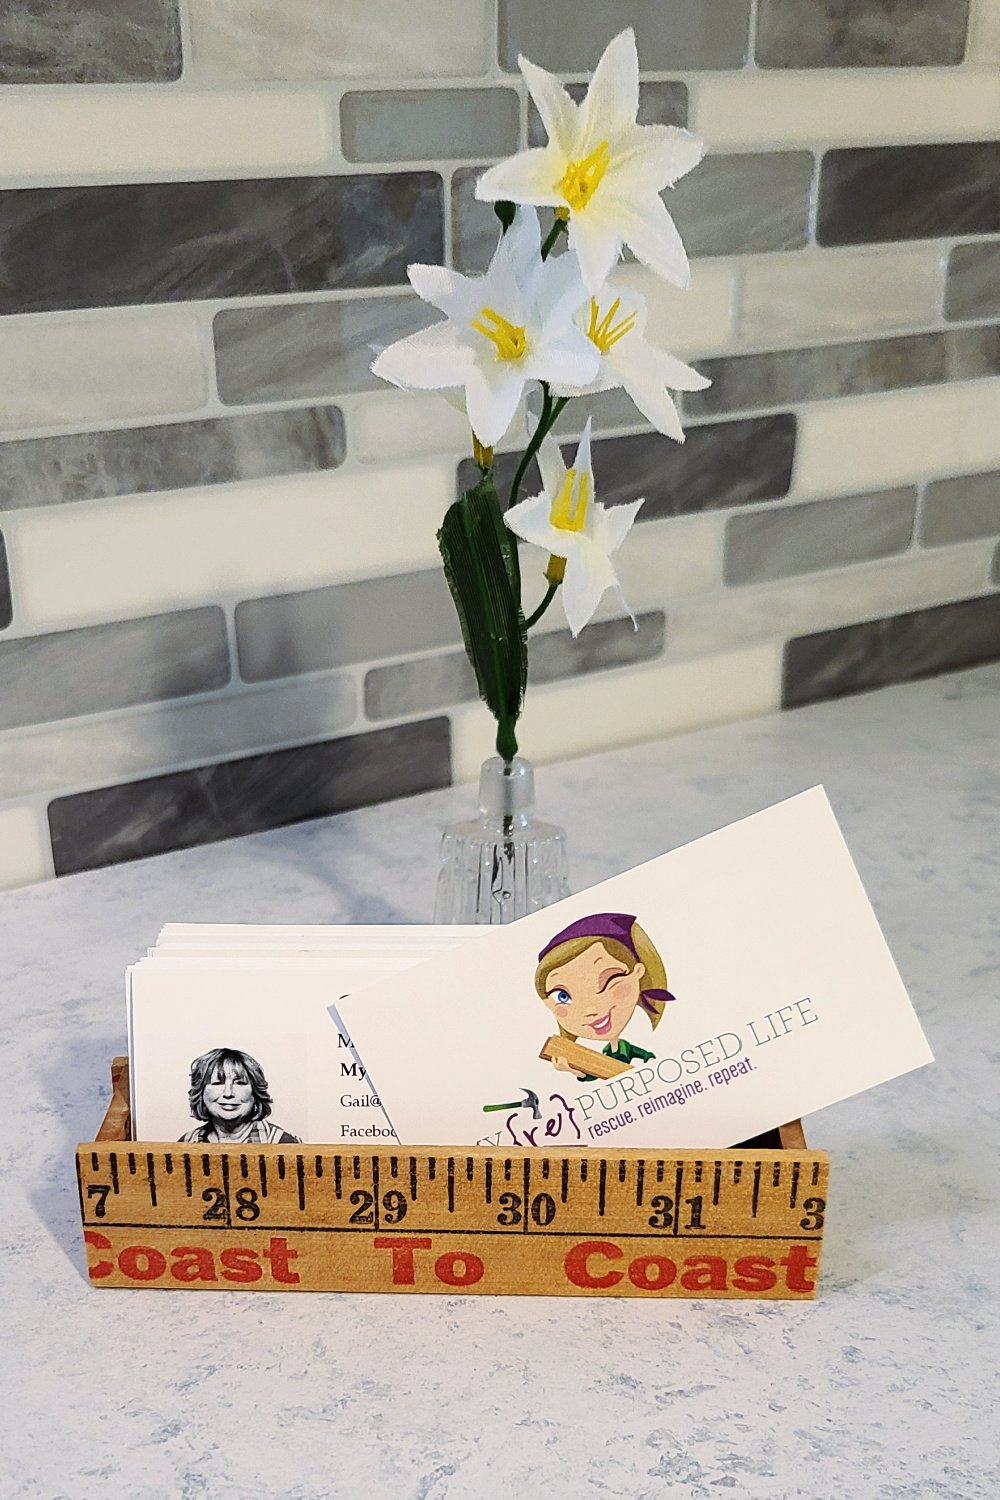 Easy directions and tips on how to make a yardstick business card holder. With a few adjustments, you could make a larger tray or similar item. #MyRepurposedLife #repurposed #yardstick #bizcardholder via @repurposedlife